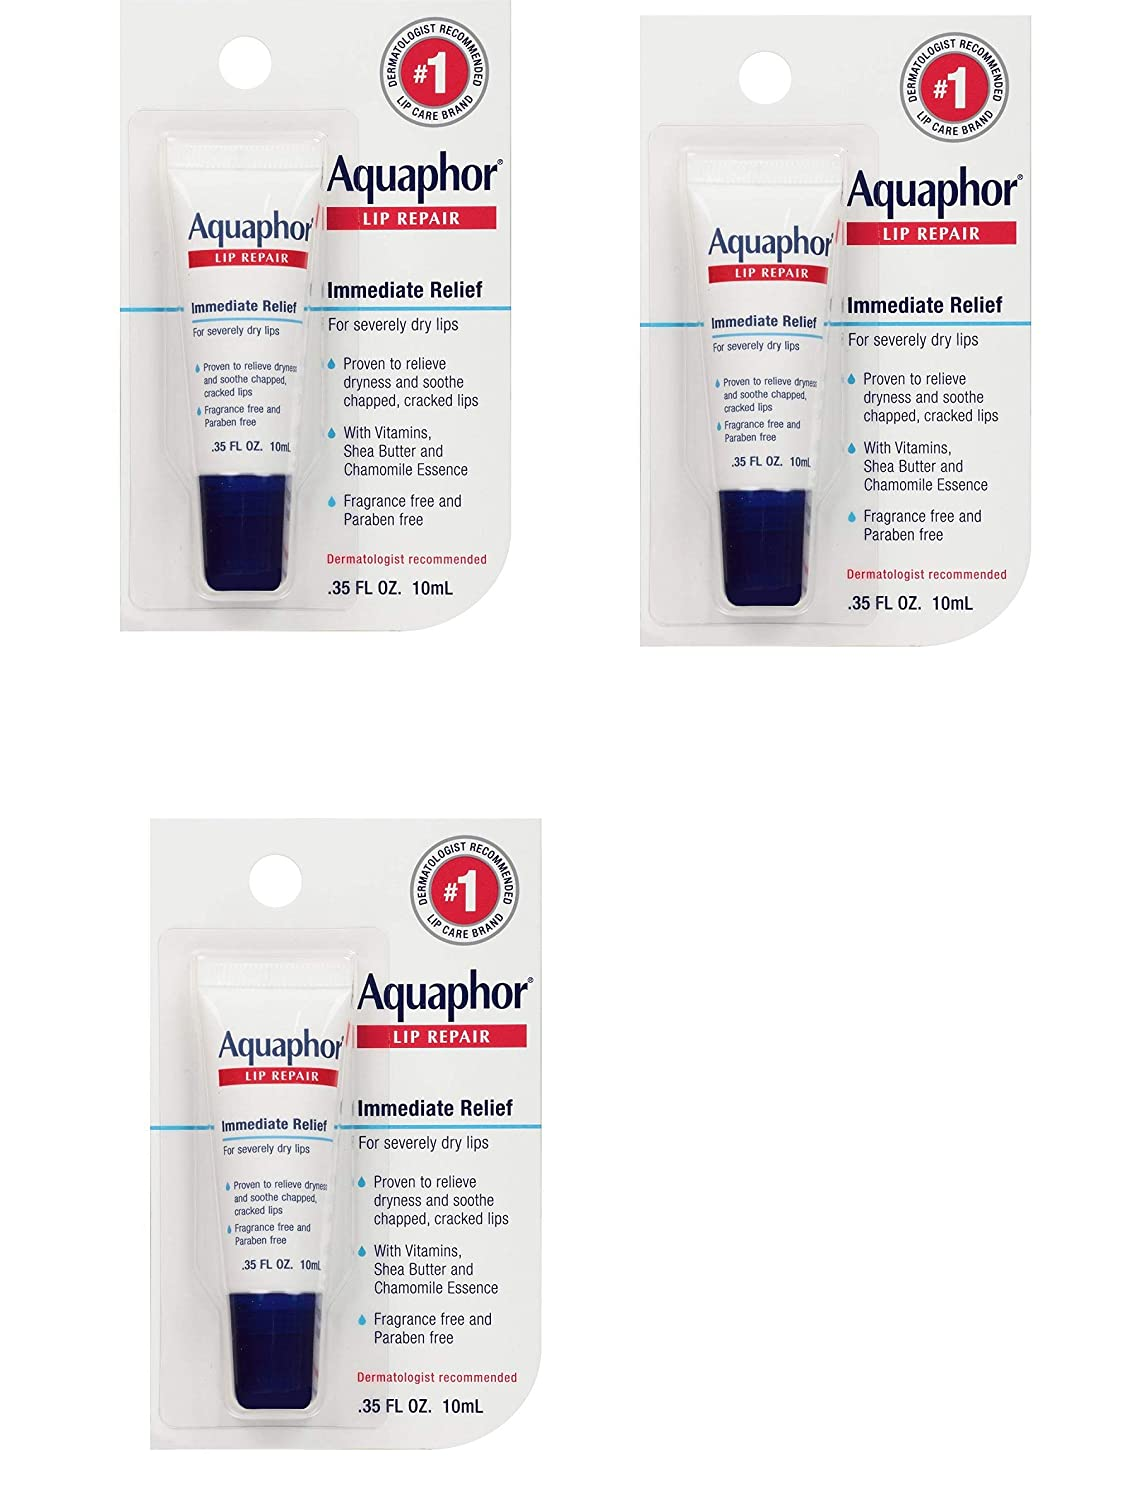 Aquaphor Lip Repair Ointment - Long-lasting Moisture to Soothe Dry Chapped Lips - .35 fl. oz Tube, 3 Pack